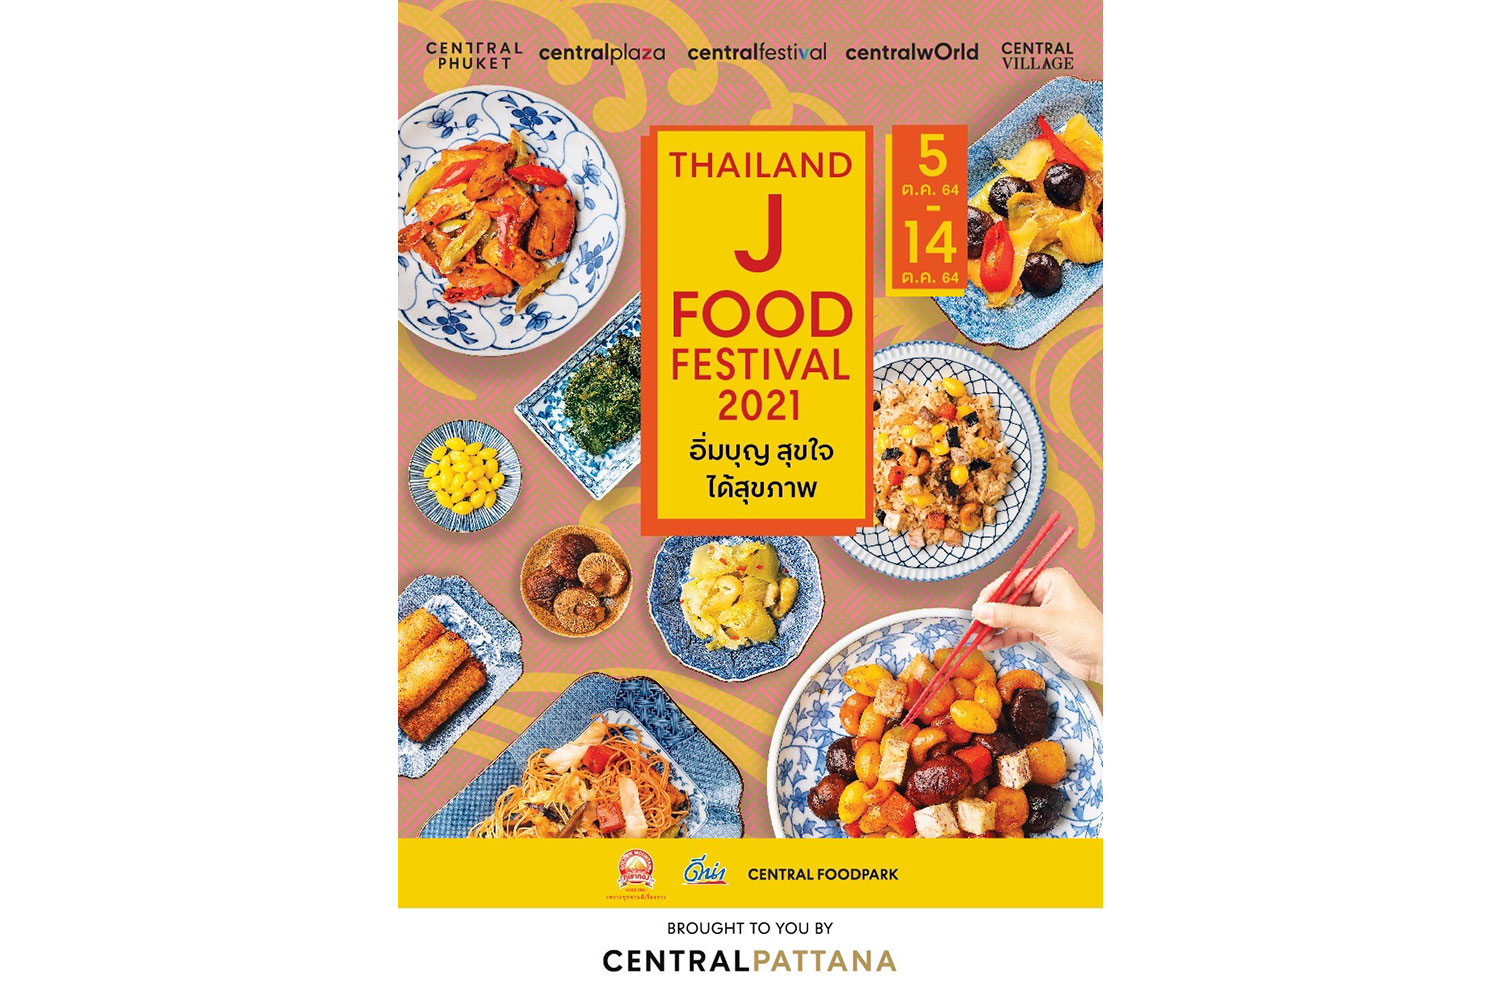 Unveiling the ultimate 'Thailand J Food Festival' at Central shopping centres nationwide